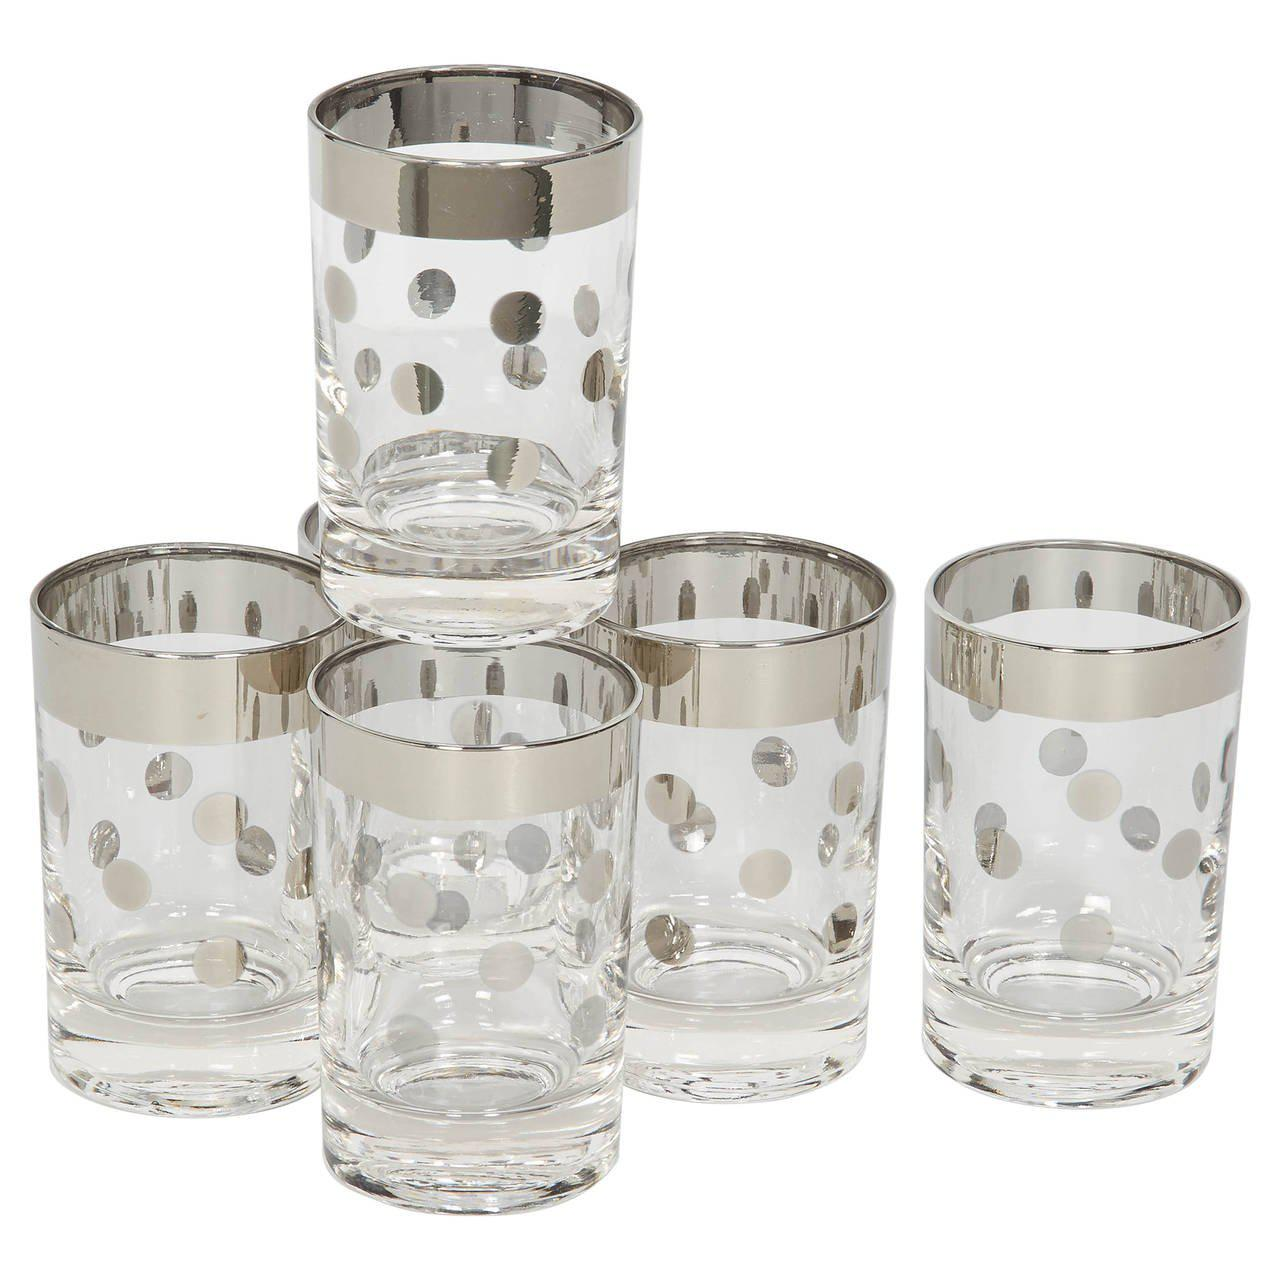 Exceptional Set Of Six Dorothy Thorpe Barware Glasses With Polka Dot Design   Image 2  Of 5